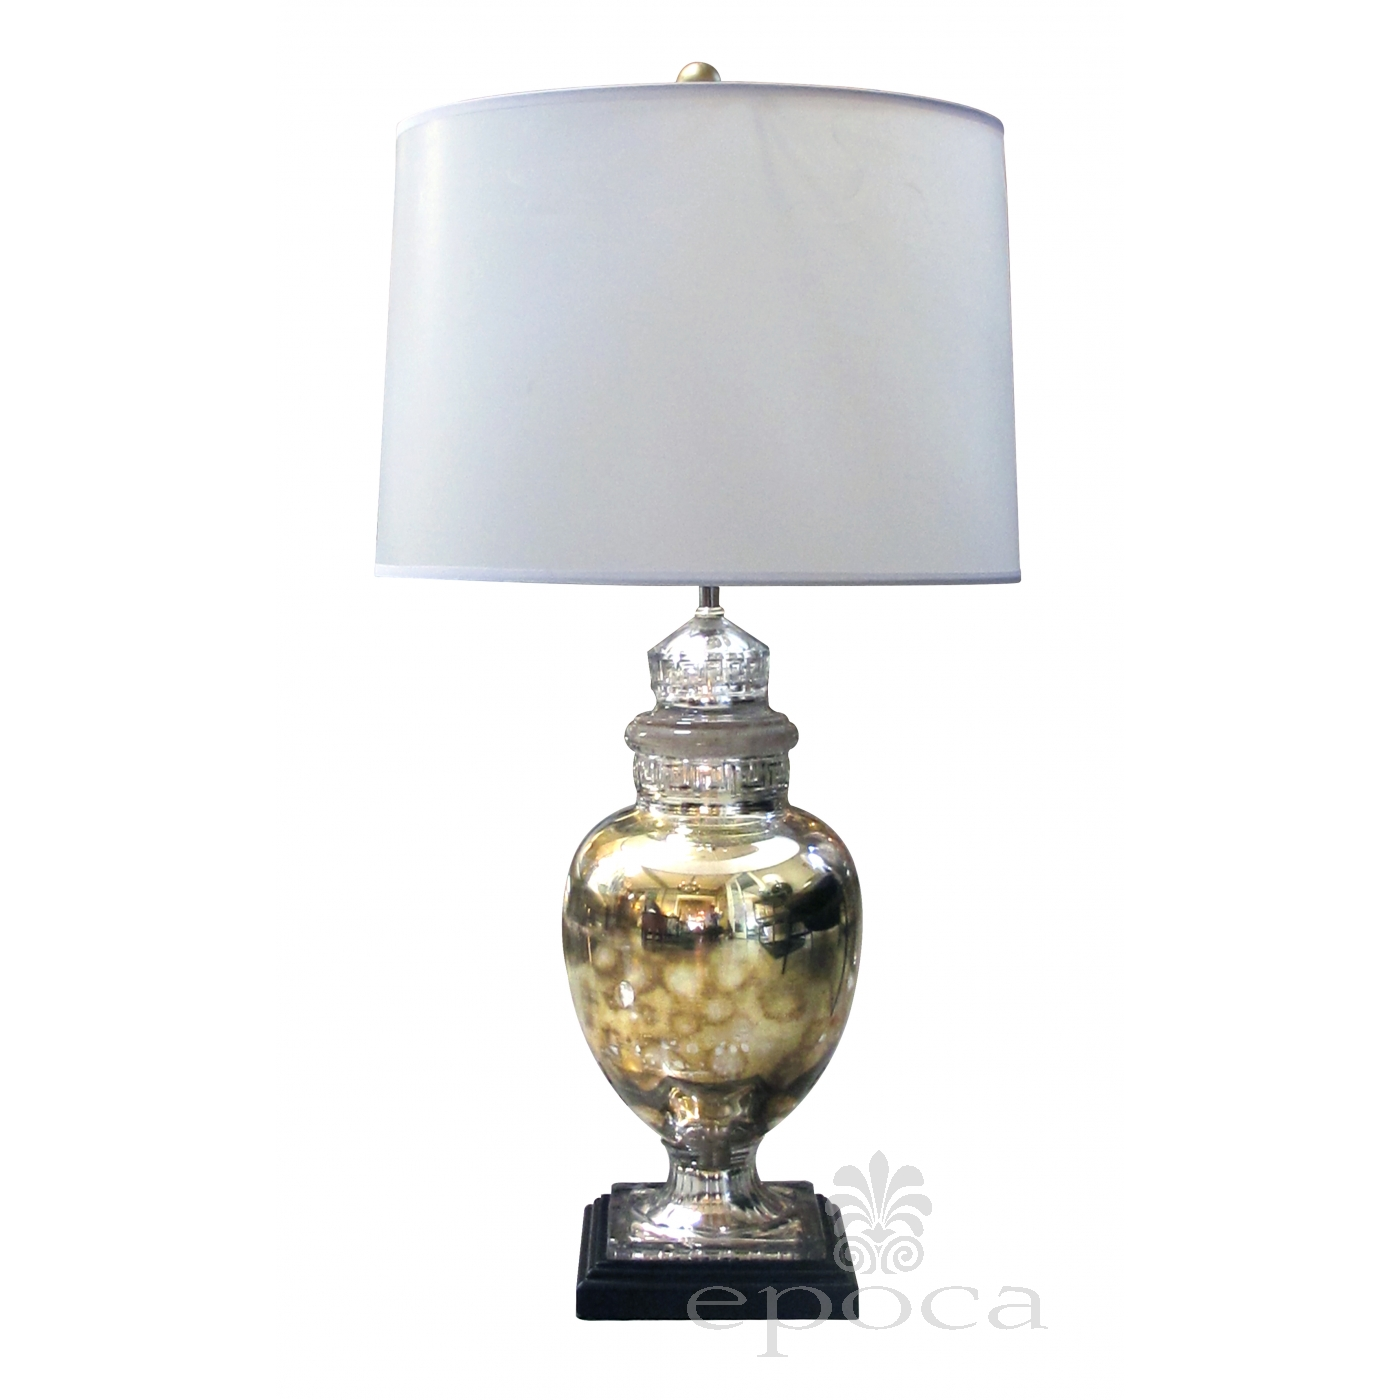 Shimmering American 1940 S Mercury Mirror Apothecary Jar Now Mounted As A Lamp